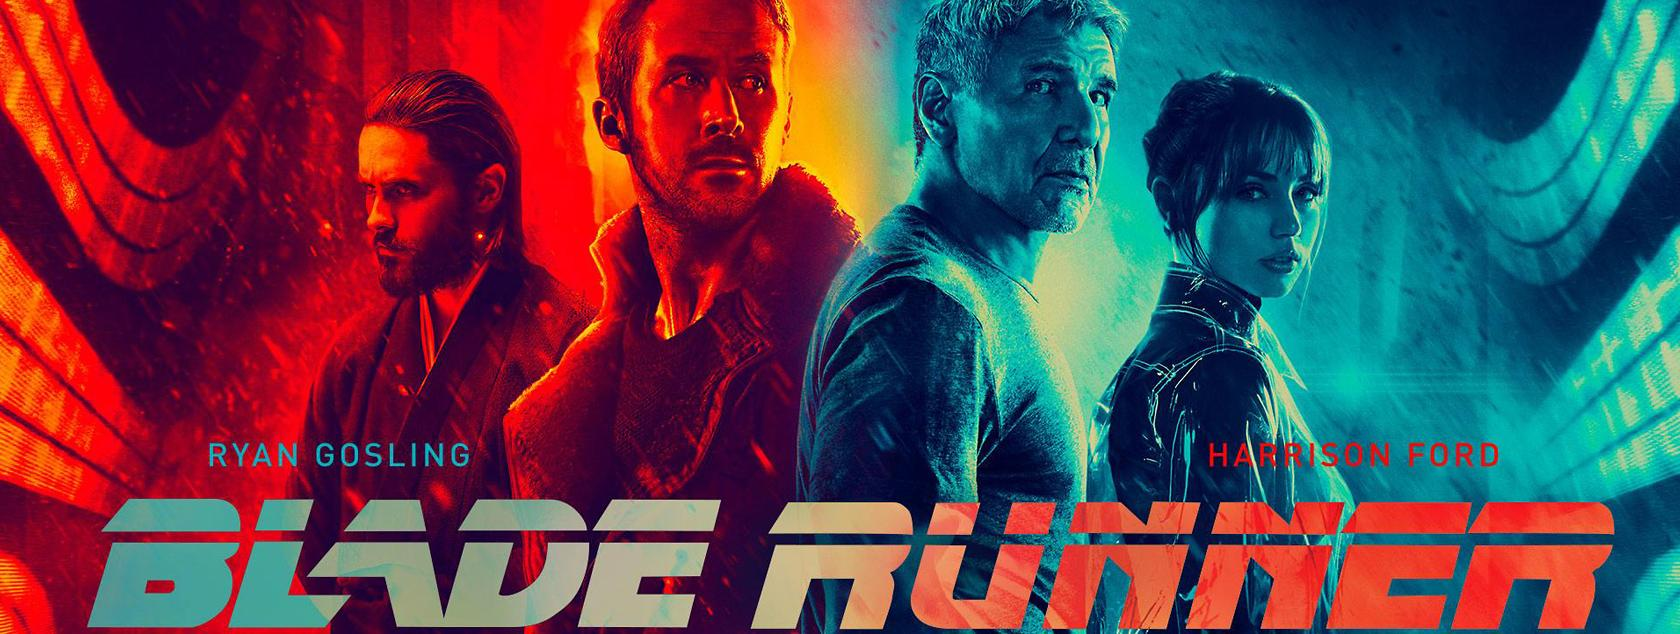 blade runner poster duotone effect follows a graphic design trend